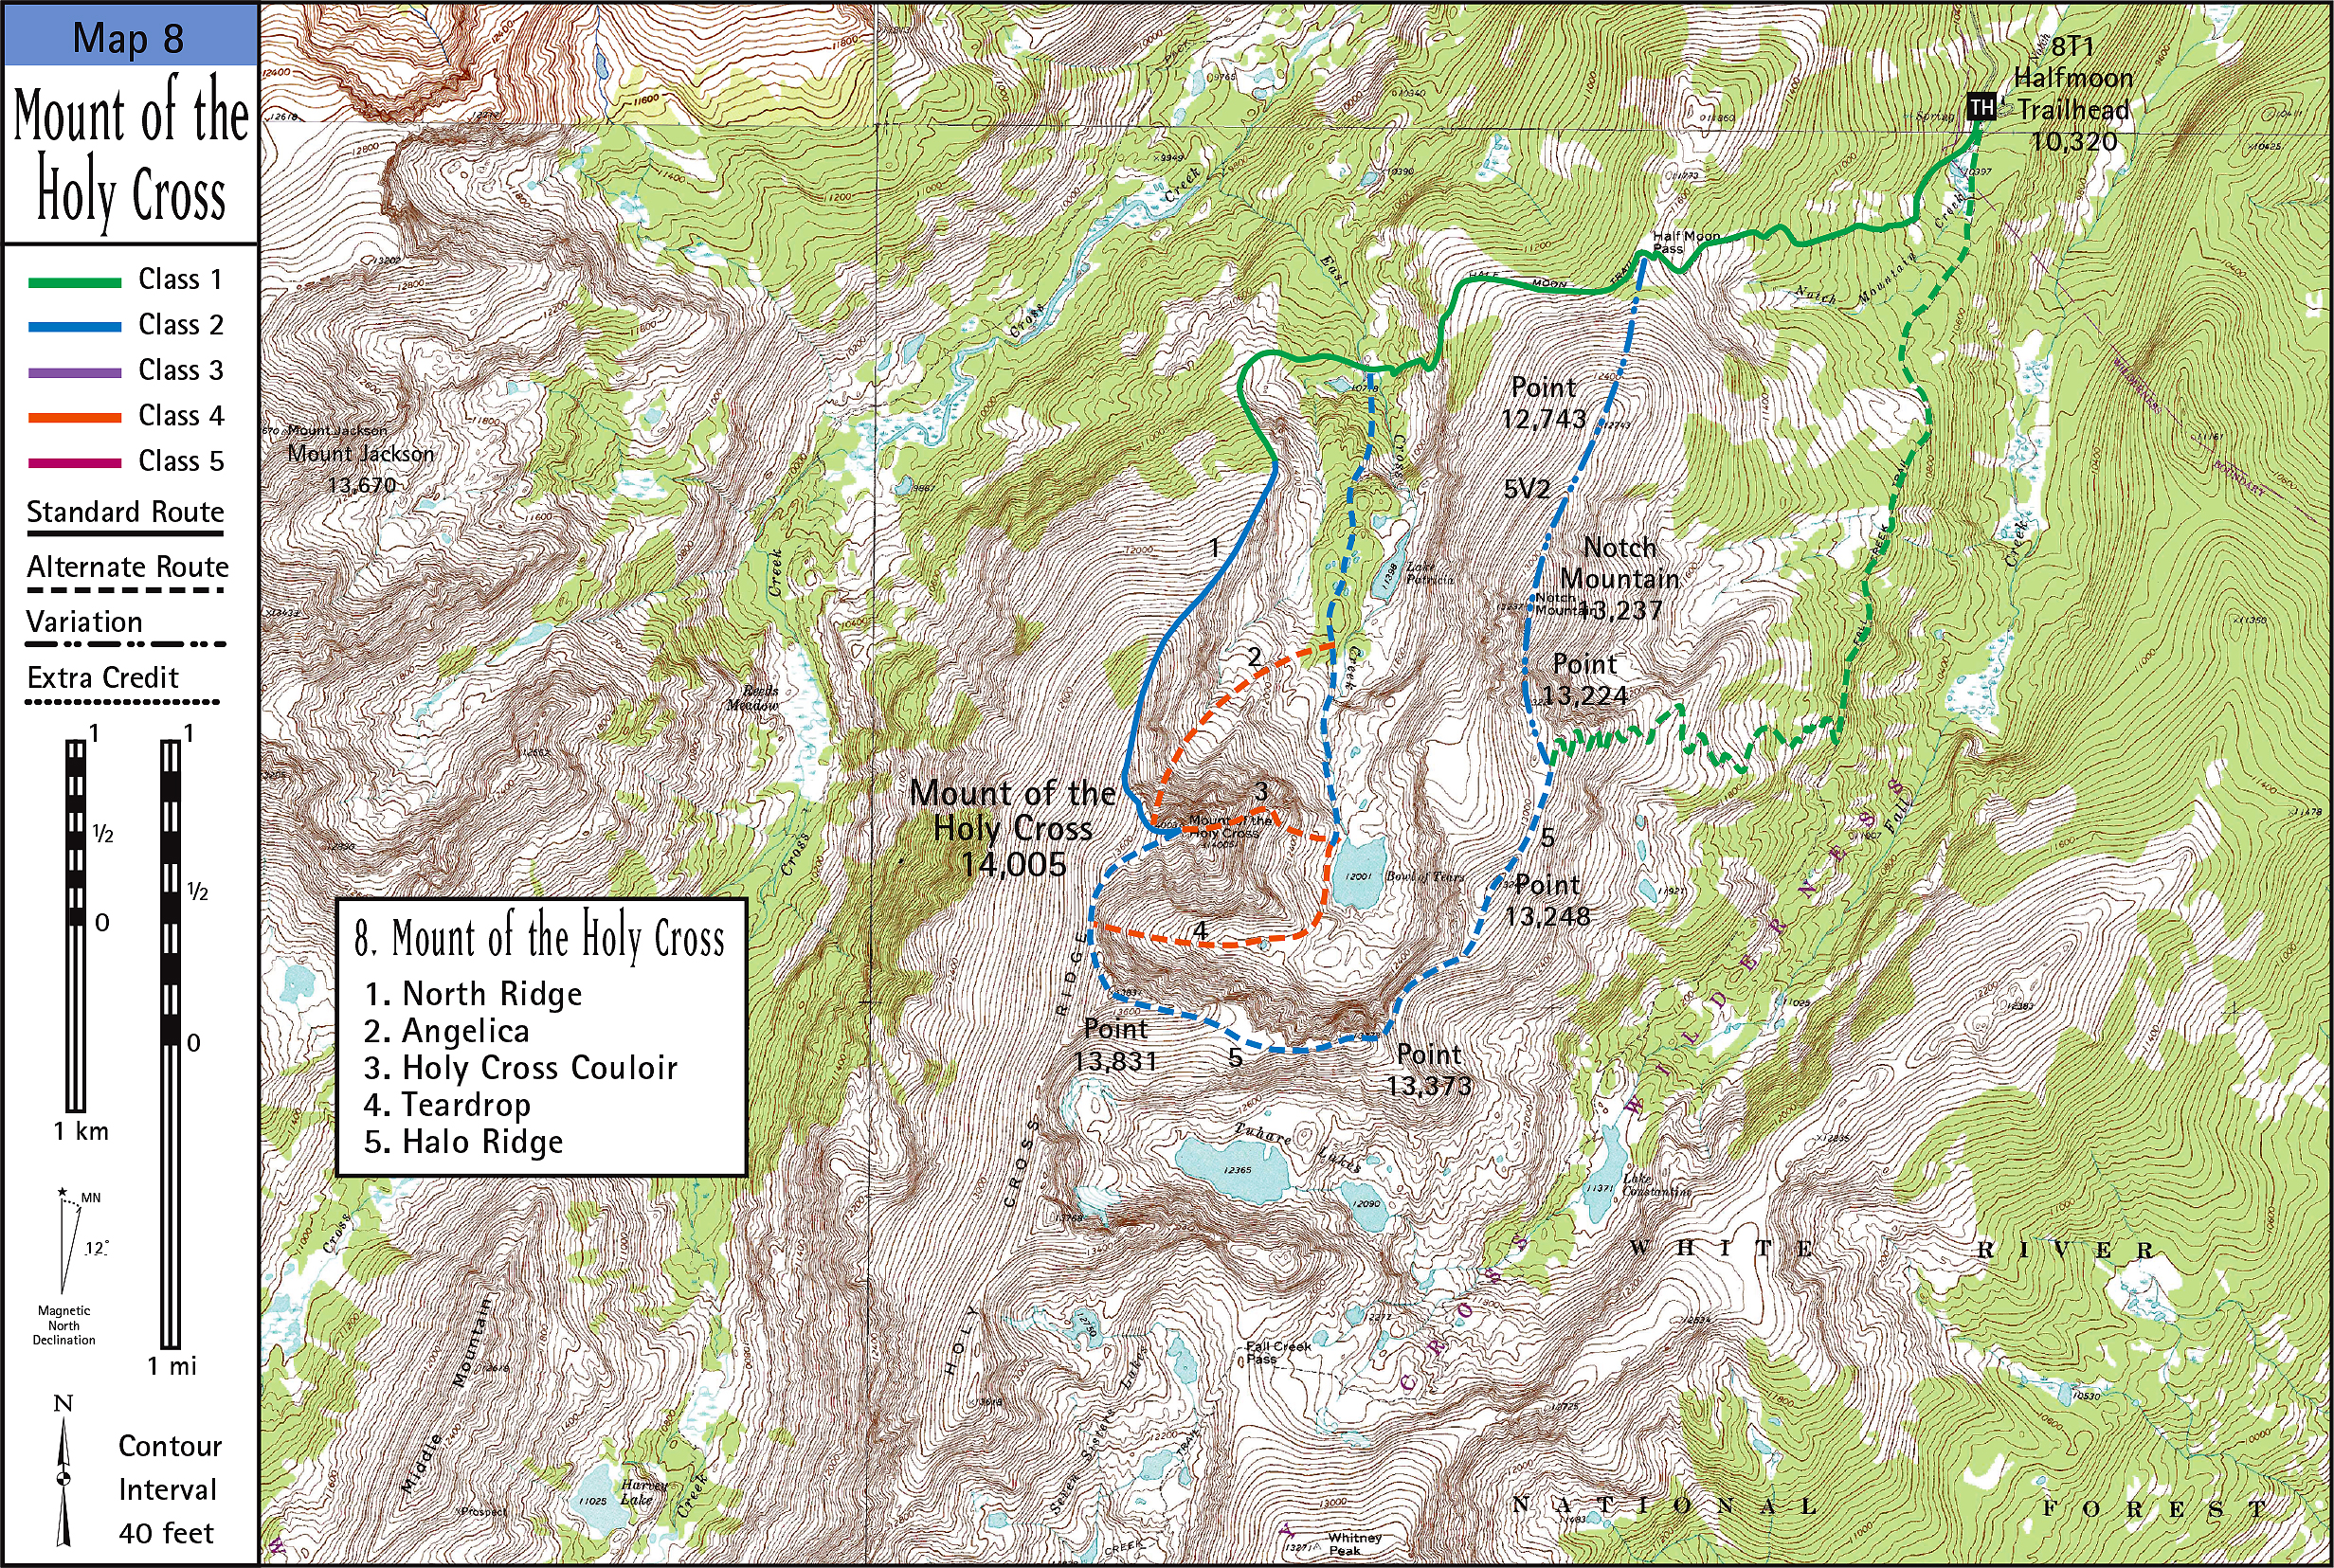 Mount of the Holy Cross Map